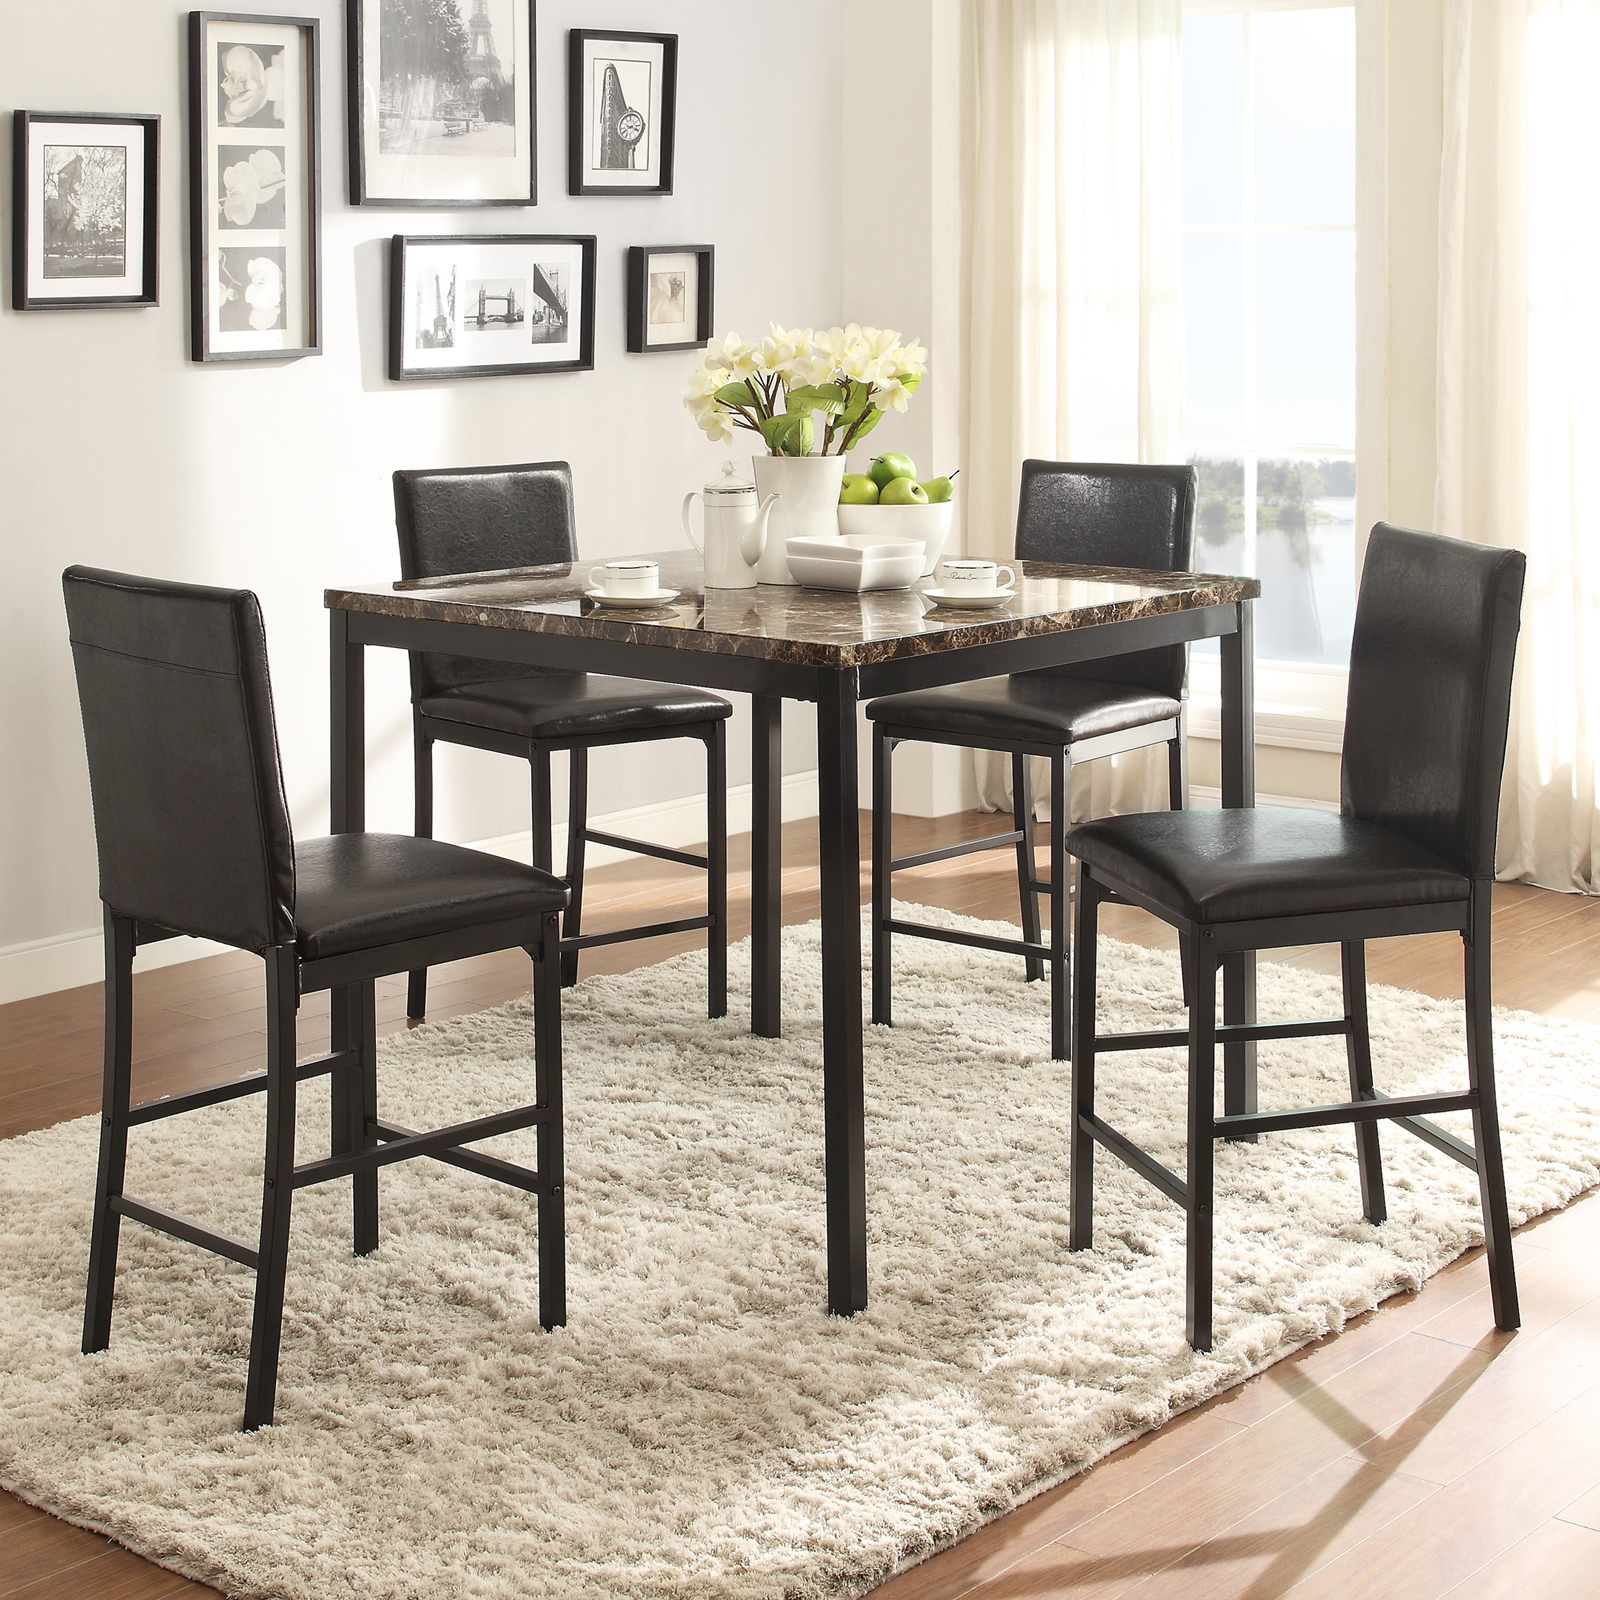 Set Top Table Marble Dining